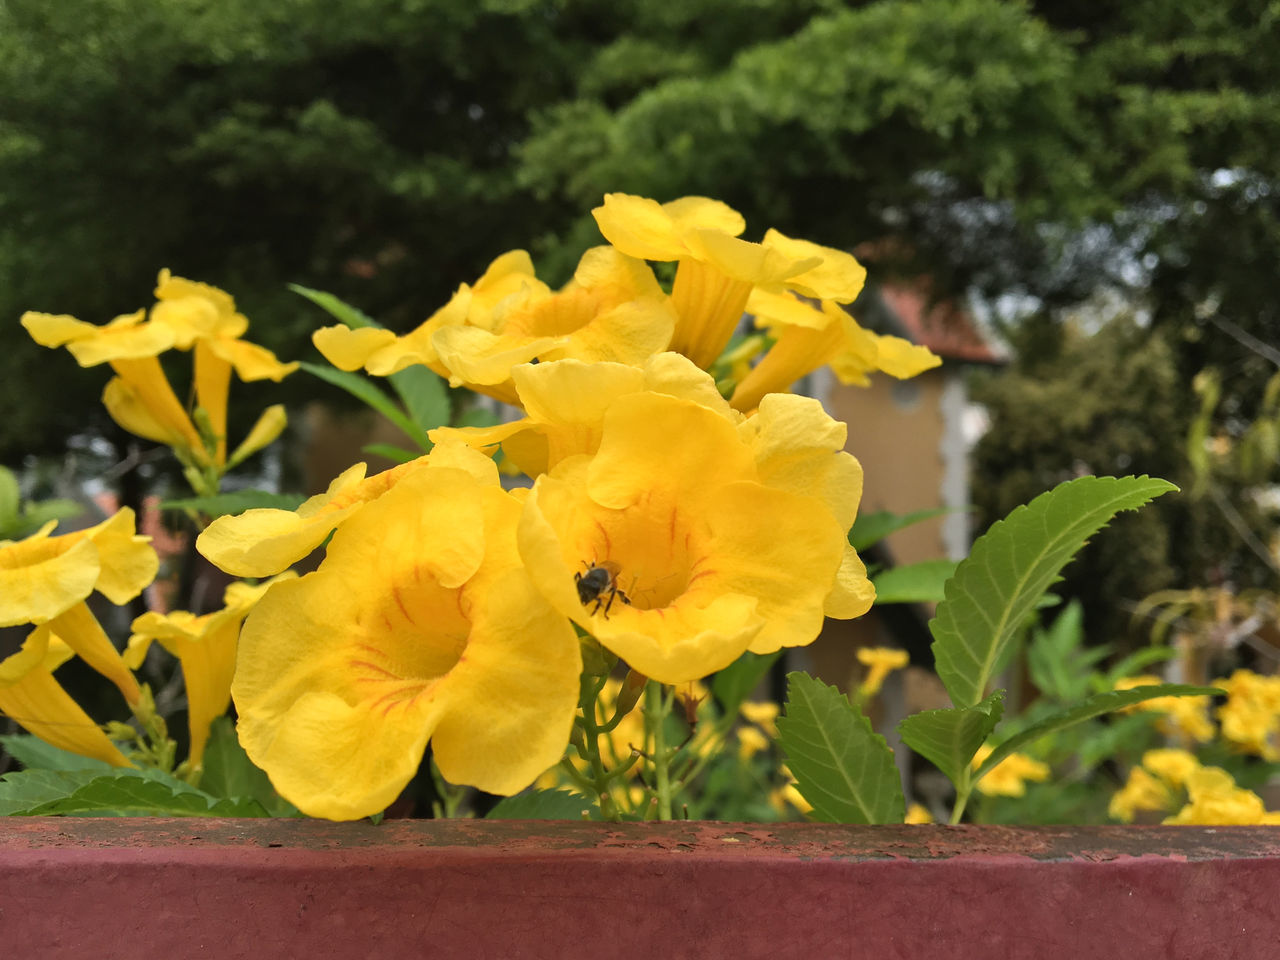 flower, yellow, plant, growth, petal, fragility, nature, beauty in nature, outdoors, insect, flower head, freshness, day, animals in the wild, animal themes, no people, bee, blooming, one animal, leaf, close-up, buzzing